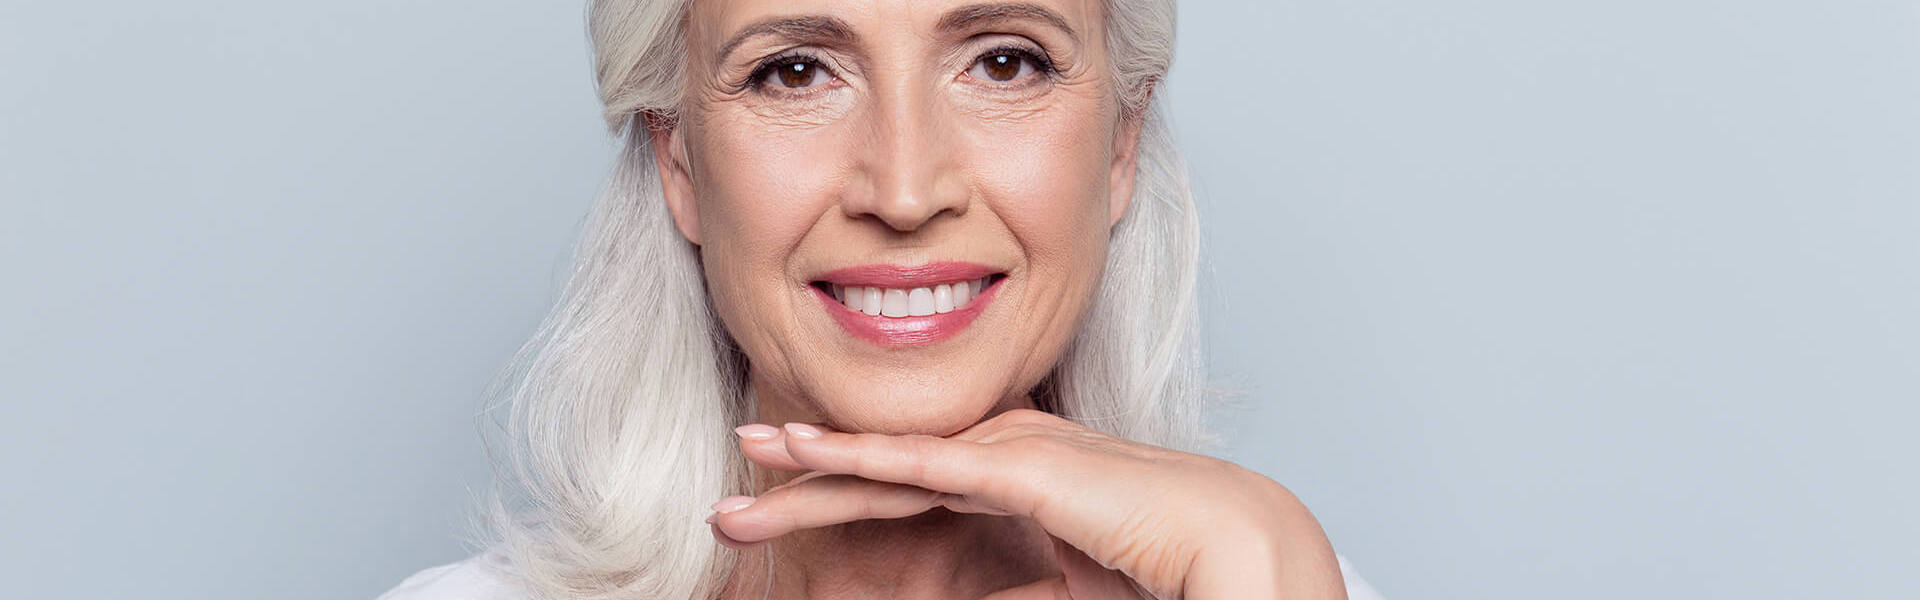 The All-On-4 Dental Implants Process